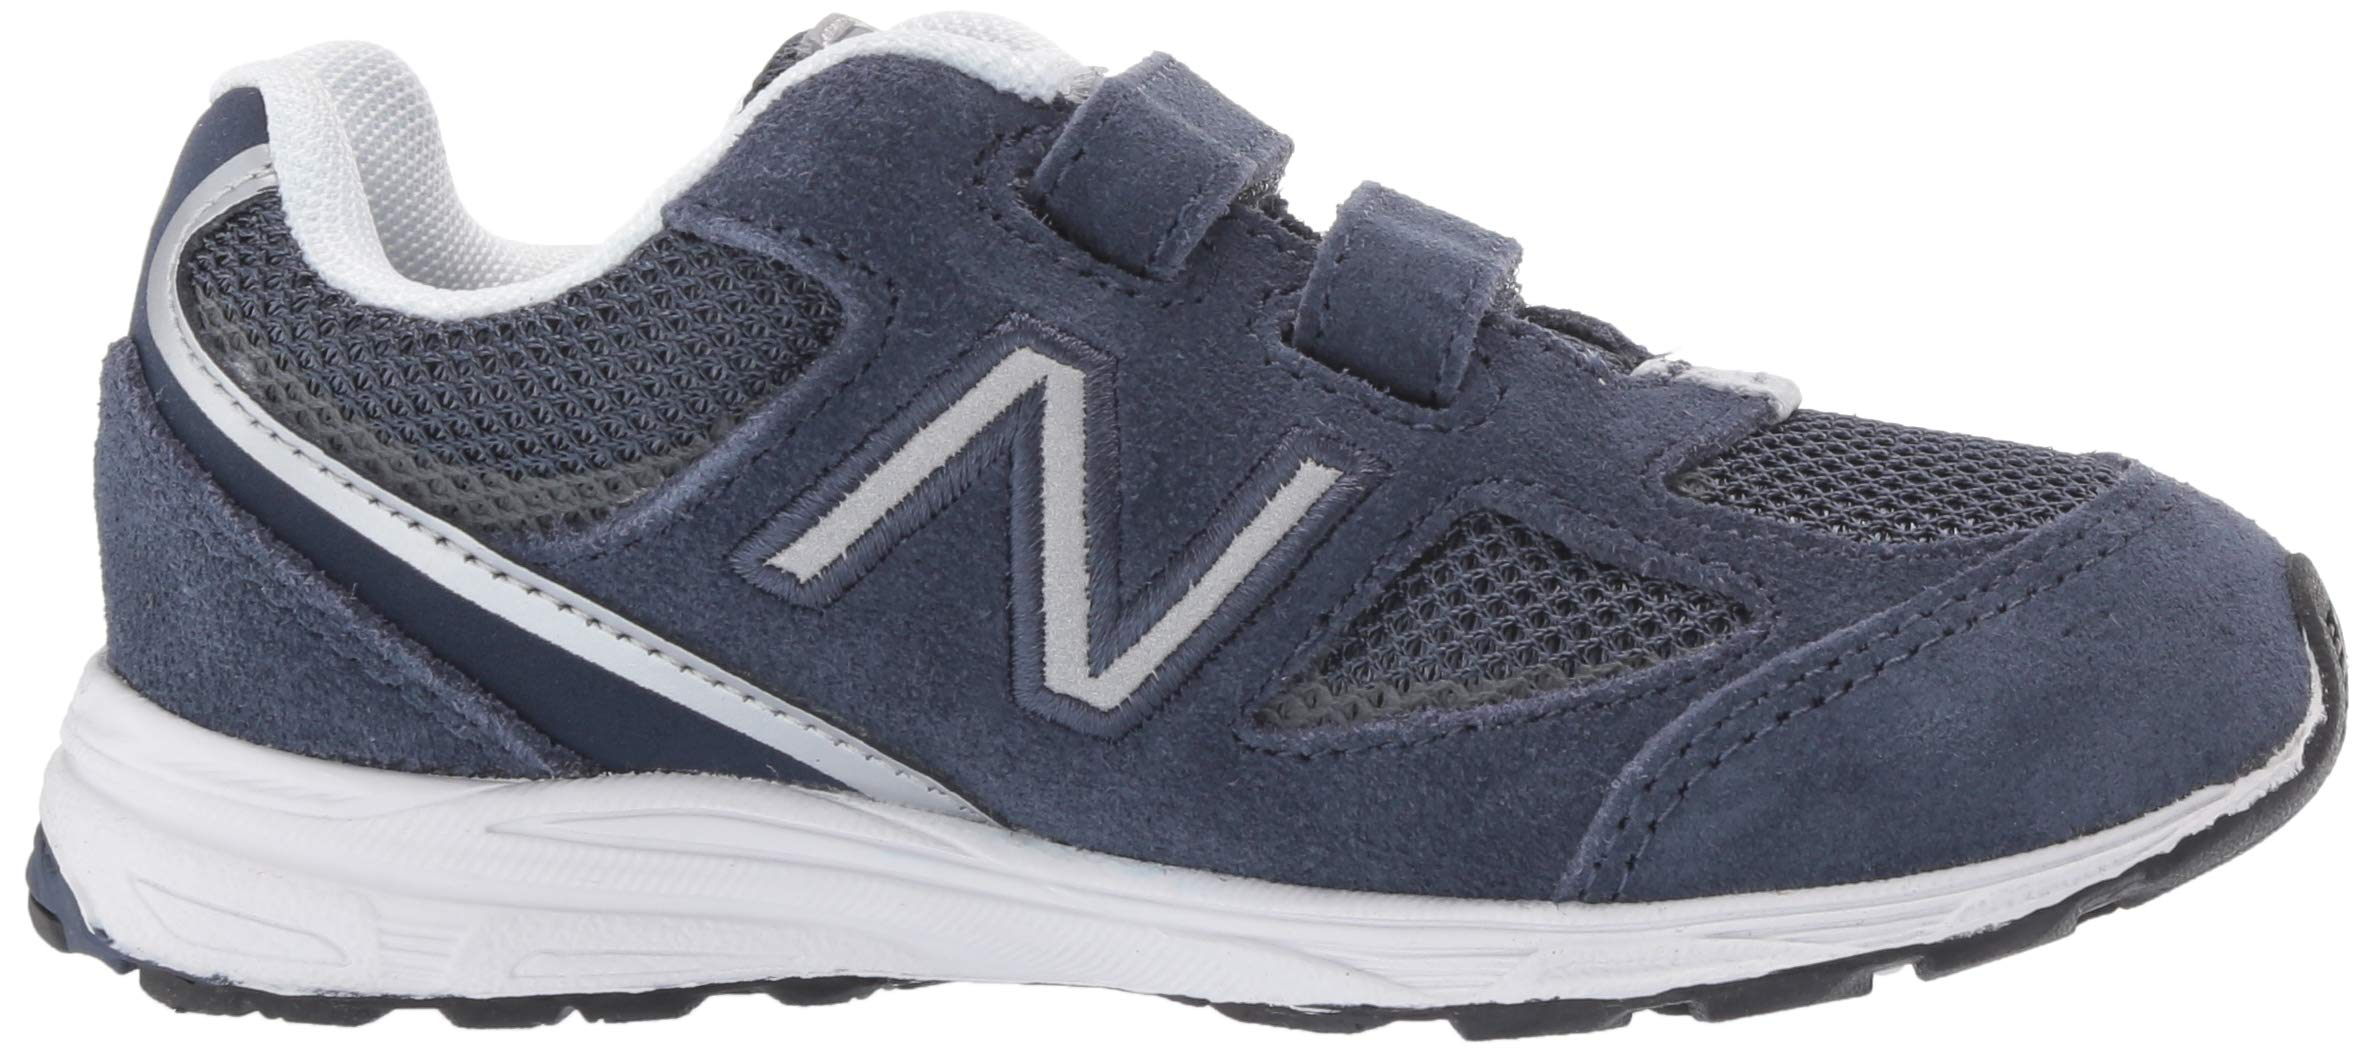 New Balance Boys' 888v2 Hook and Loop Running Shoe, Navy/Grey, 2 W US Infant by New Balance (Image #6)